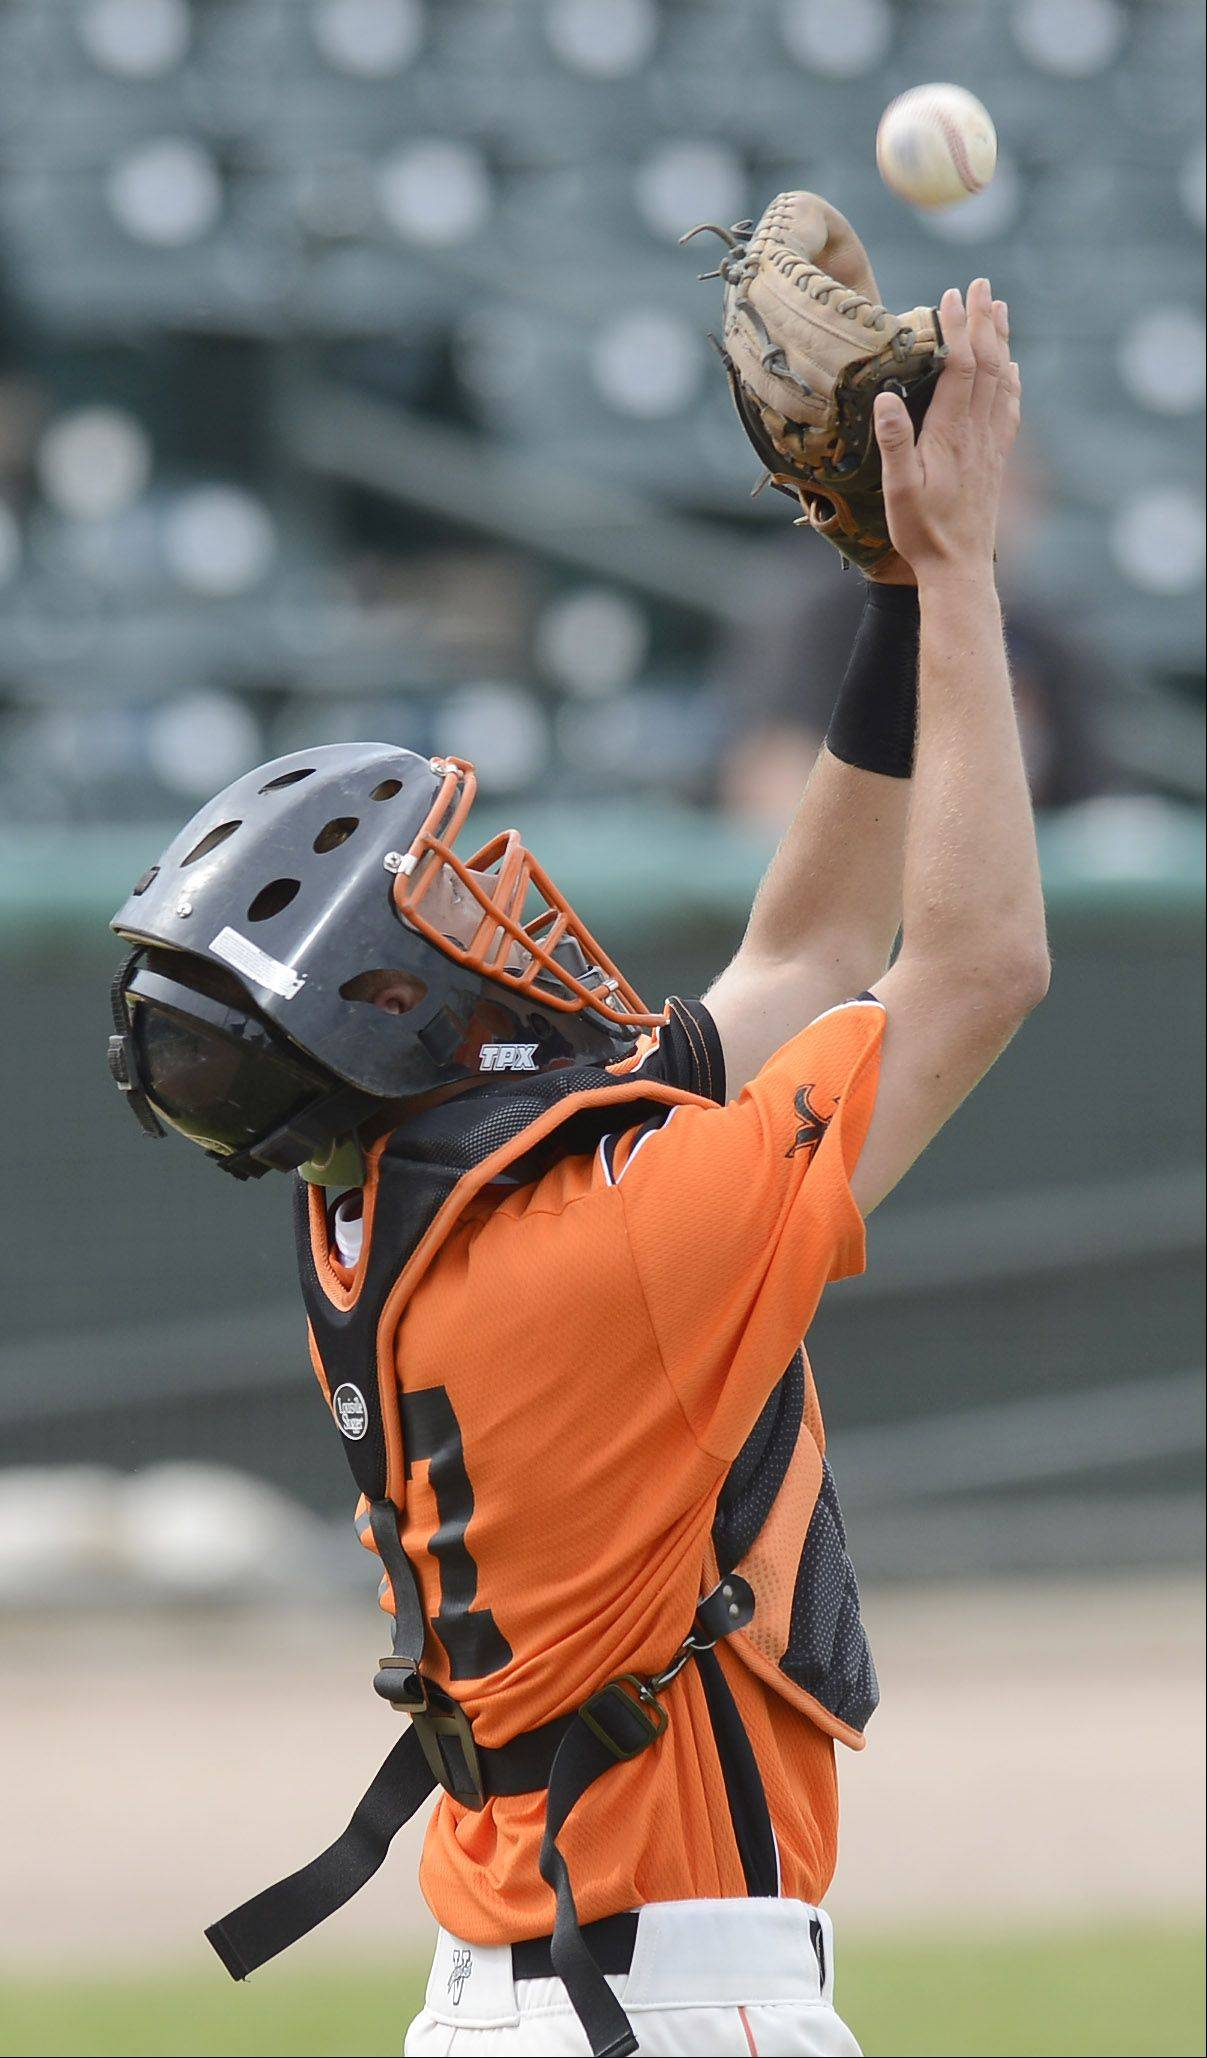 St. Charles East catcher Adam Rojas catches a pop fly on the infield during the Class 4A state baseball third-place game at Silver Cross Field in Joliet Saturday.